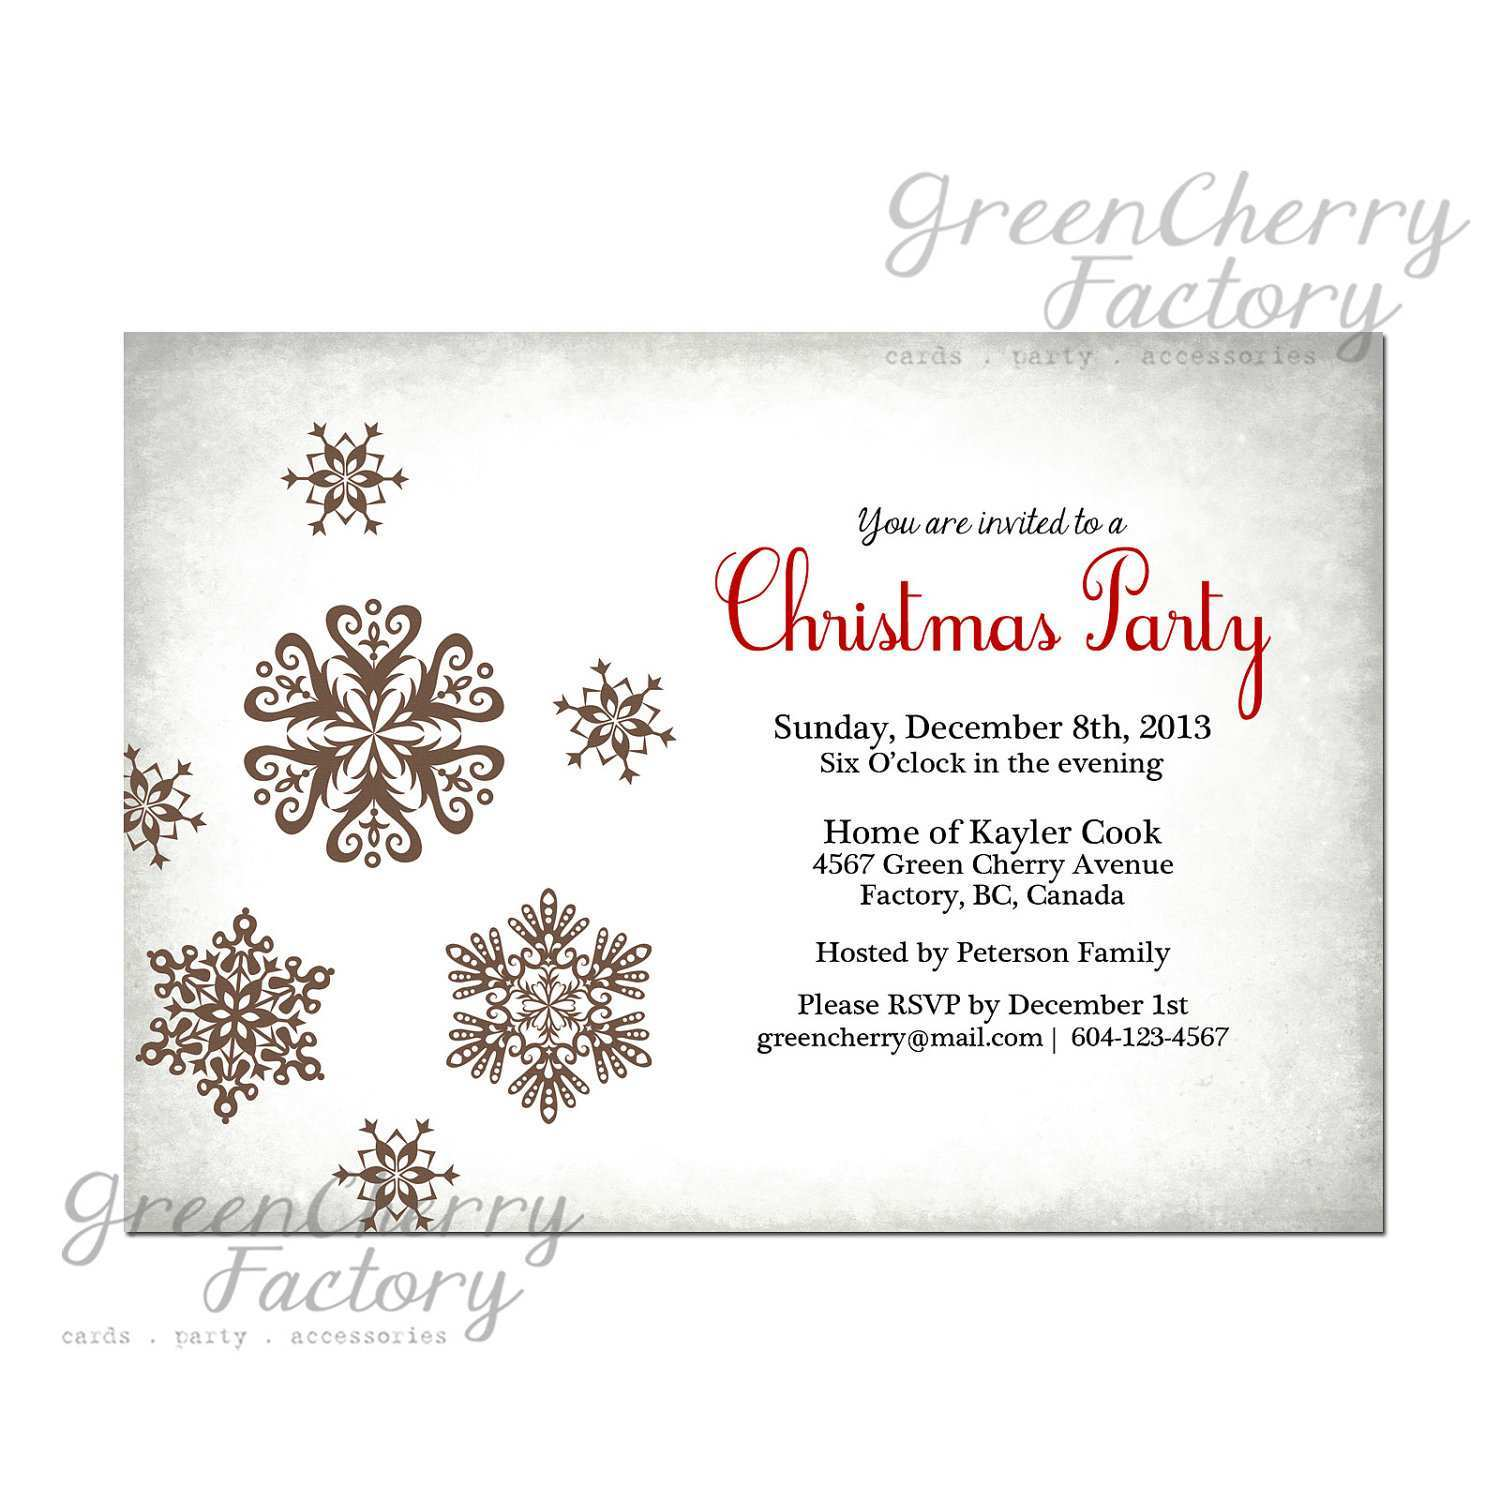 25 How To Create Free Christmas Party Invitation Templates Uk for Intended For Free Christmas Invitation Templates For Word